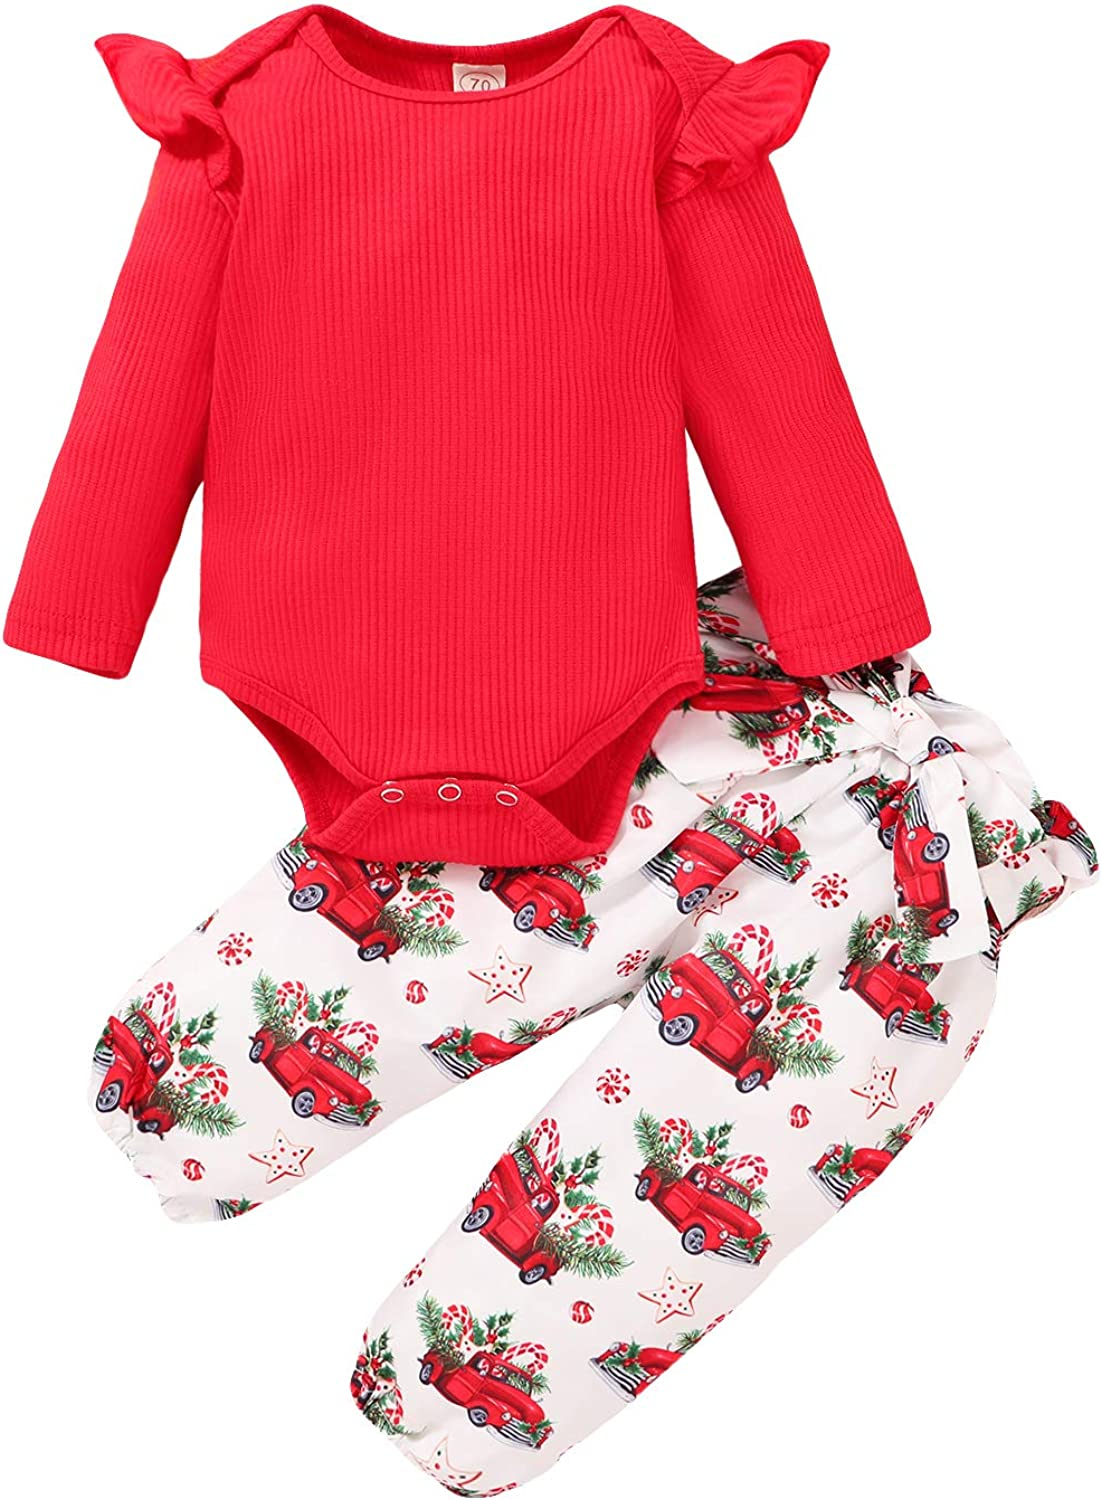 3pcs Baby Girl Colthes Ruffle Ribbed Knit Romper Top Cotton Cute Pant Set Headband Toddler Outfits